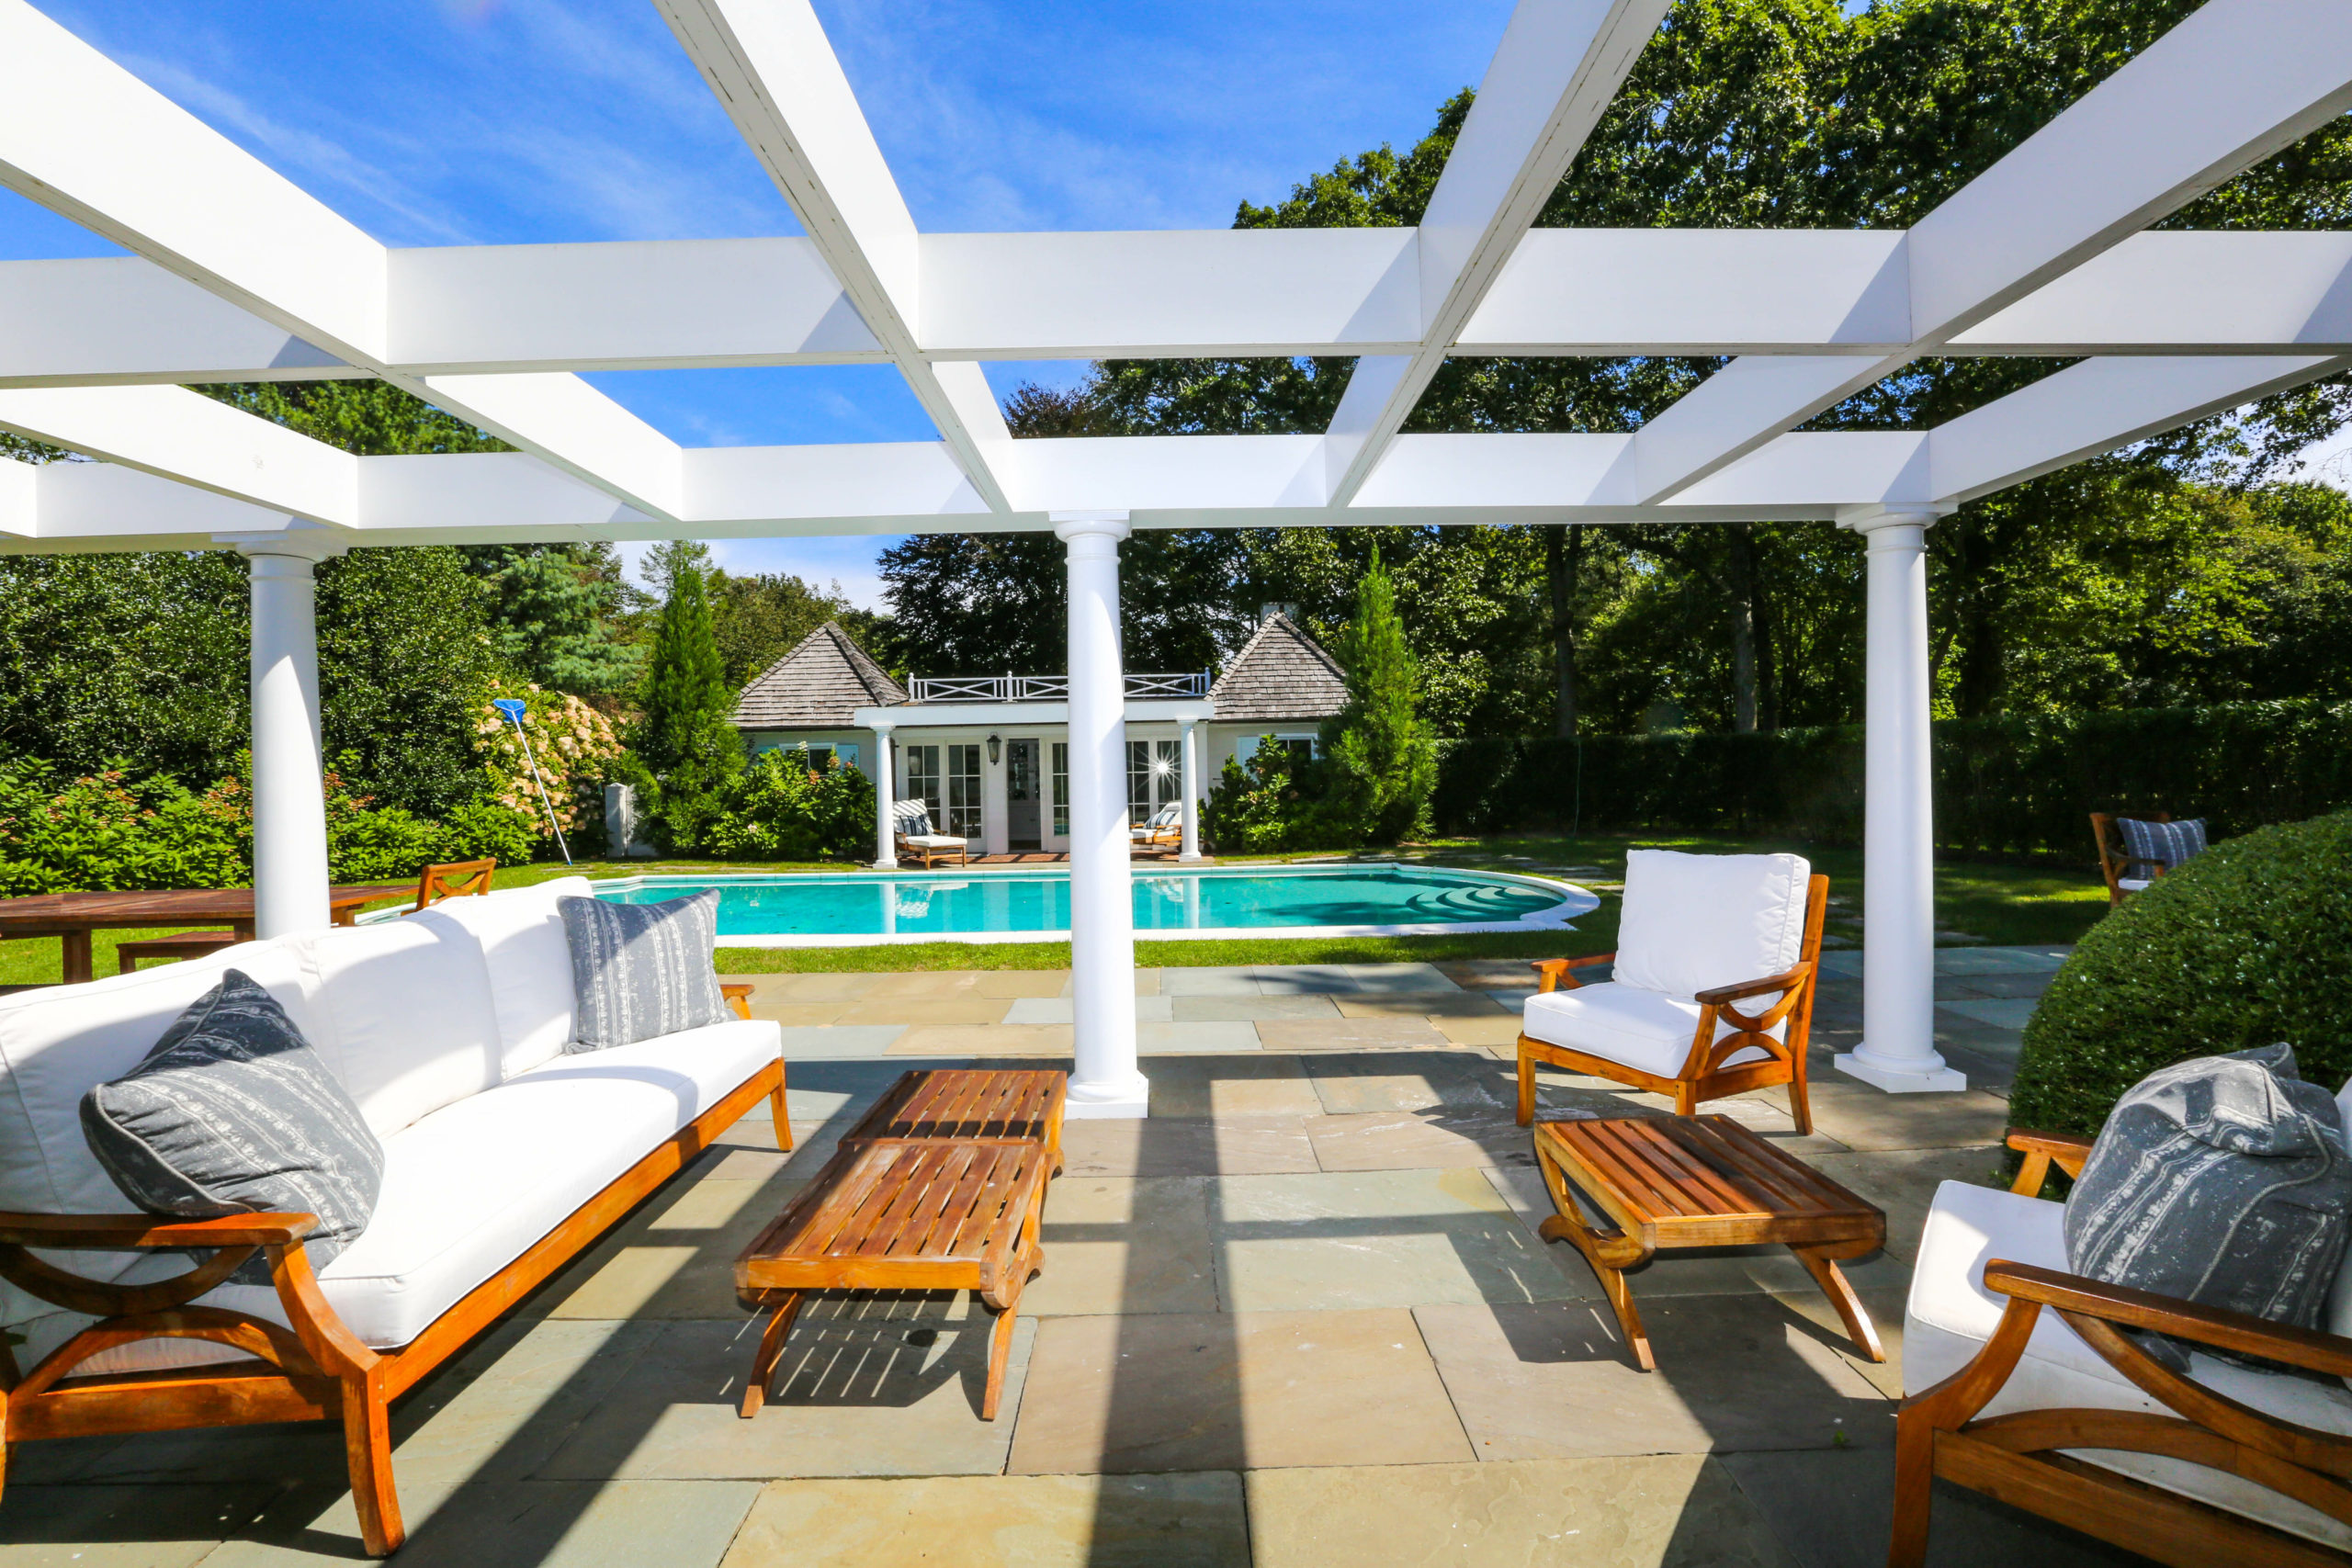 Racheal Ray sold her Tuckahoe Lane home in Southampton for $3.25 million.